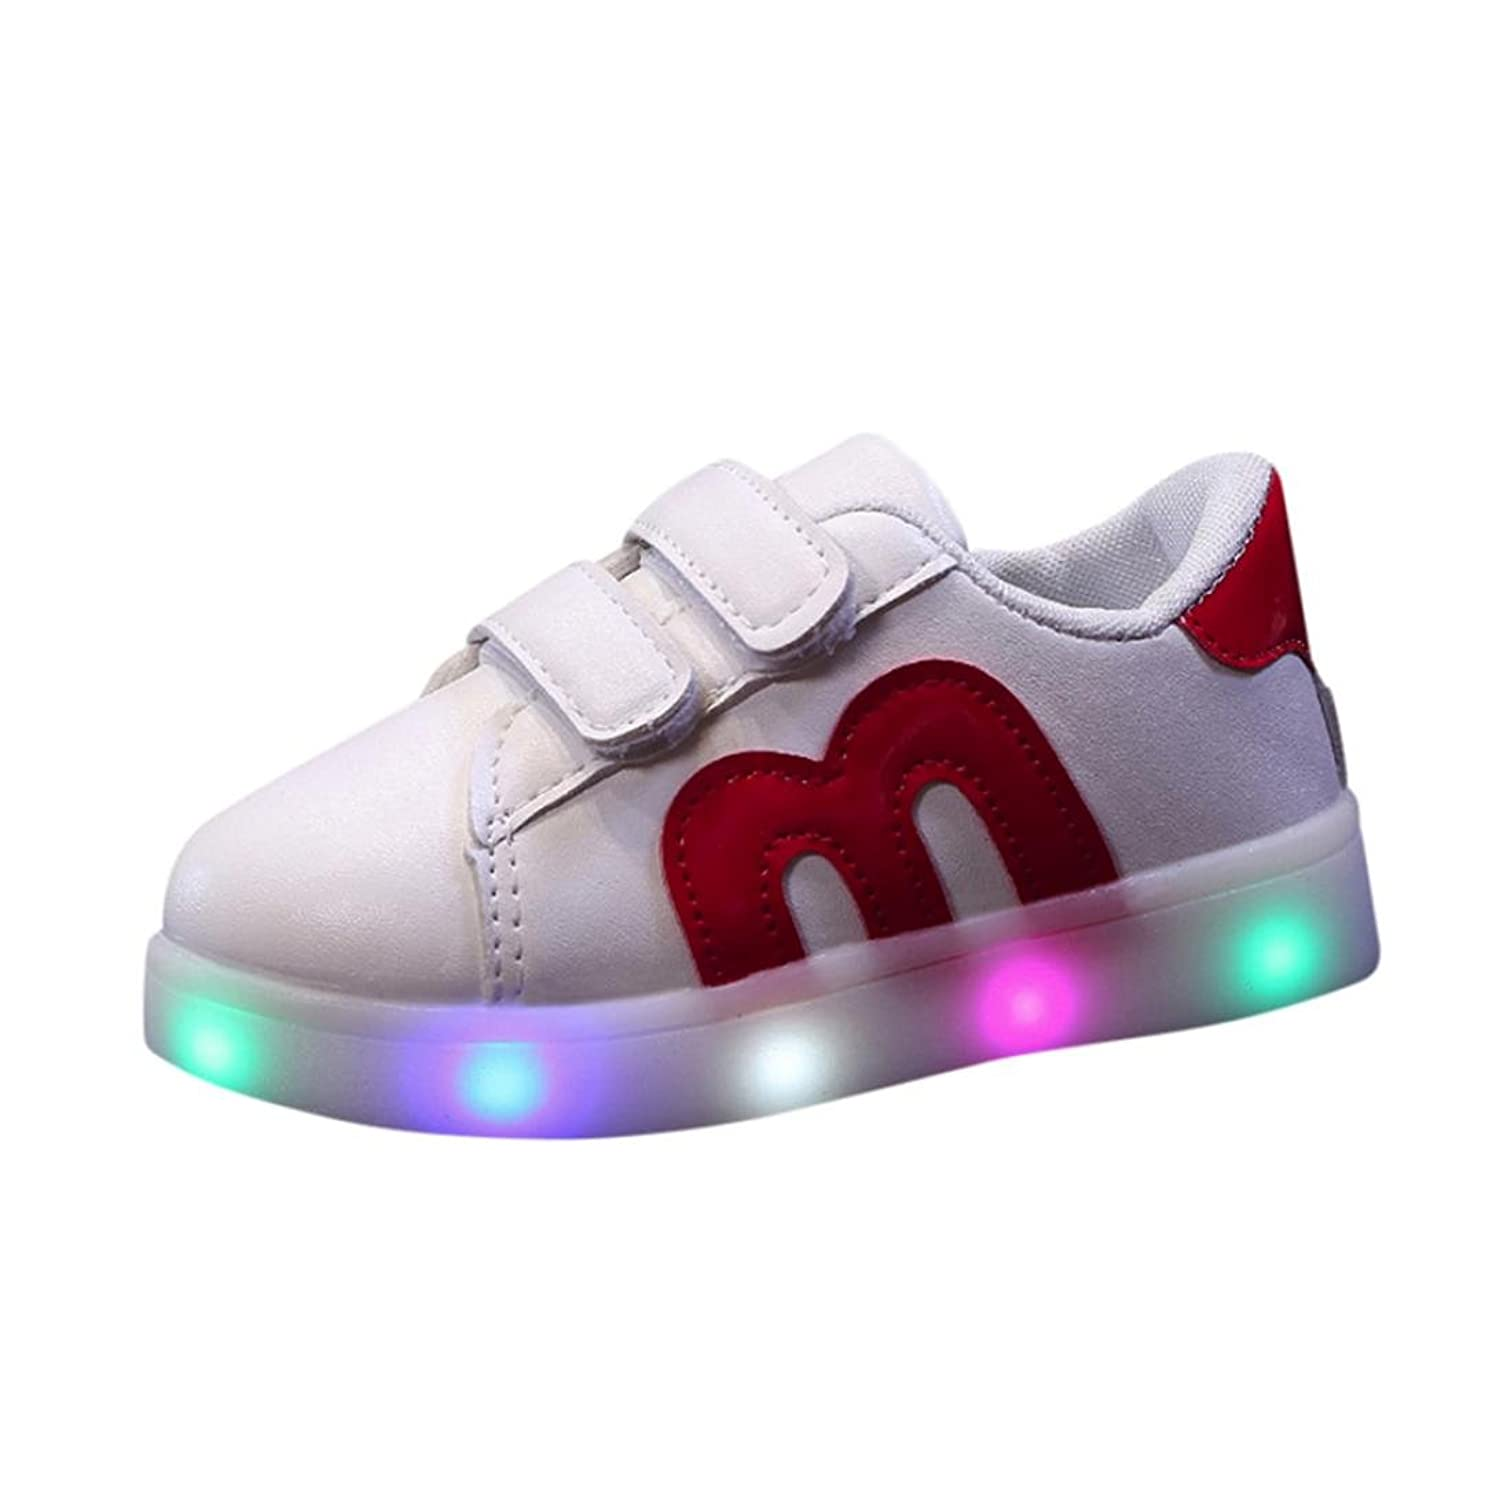 Witspace Baby Boys Girls LED Light Up Luminous Sneakers Toddler Kids